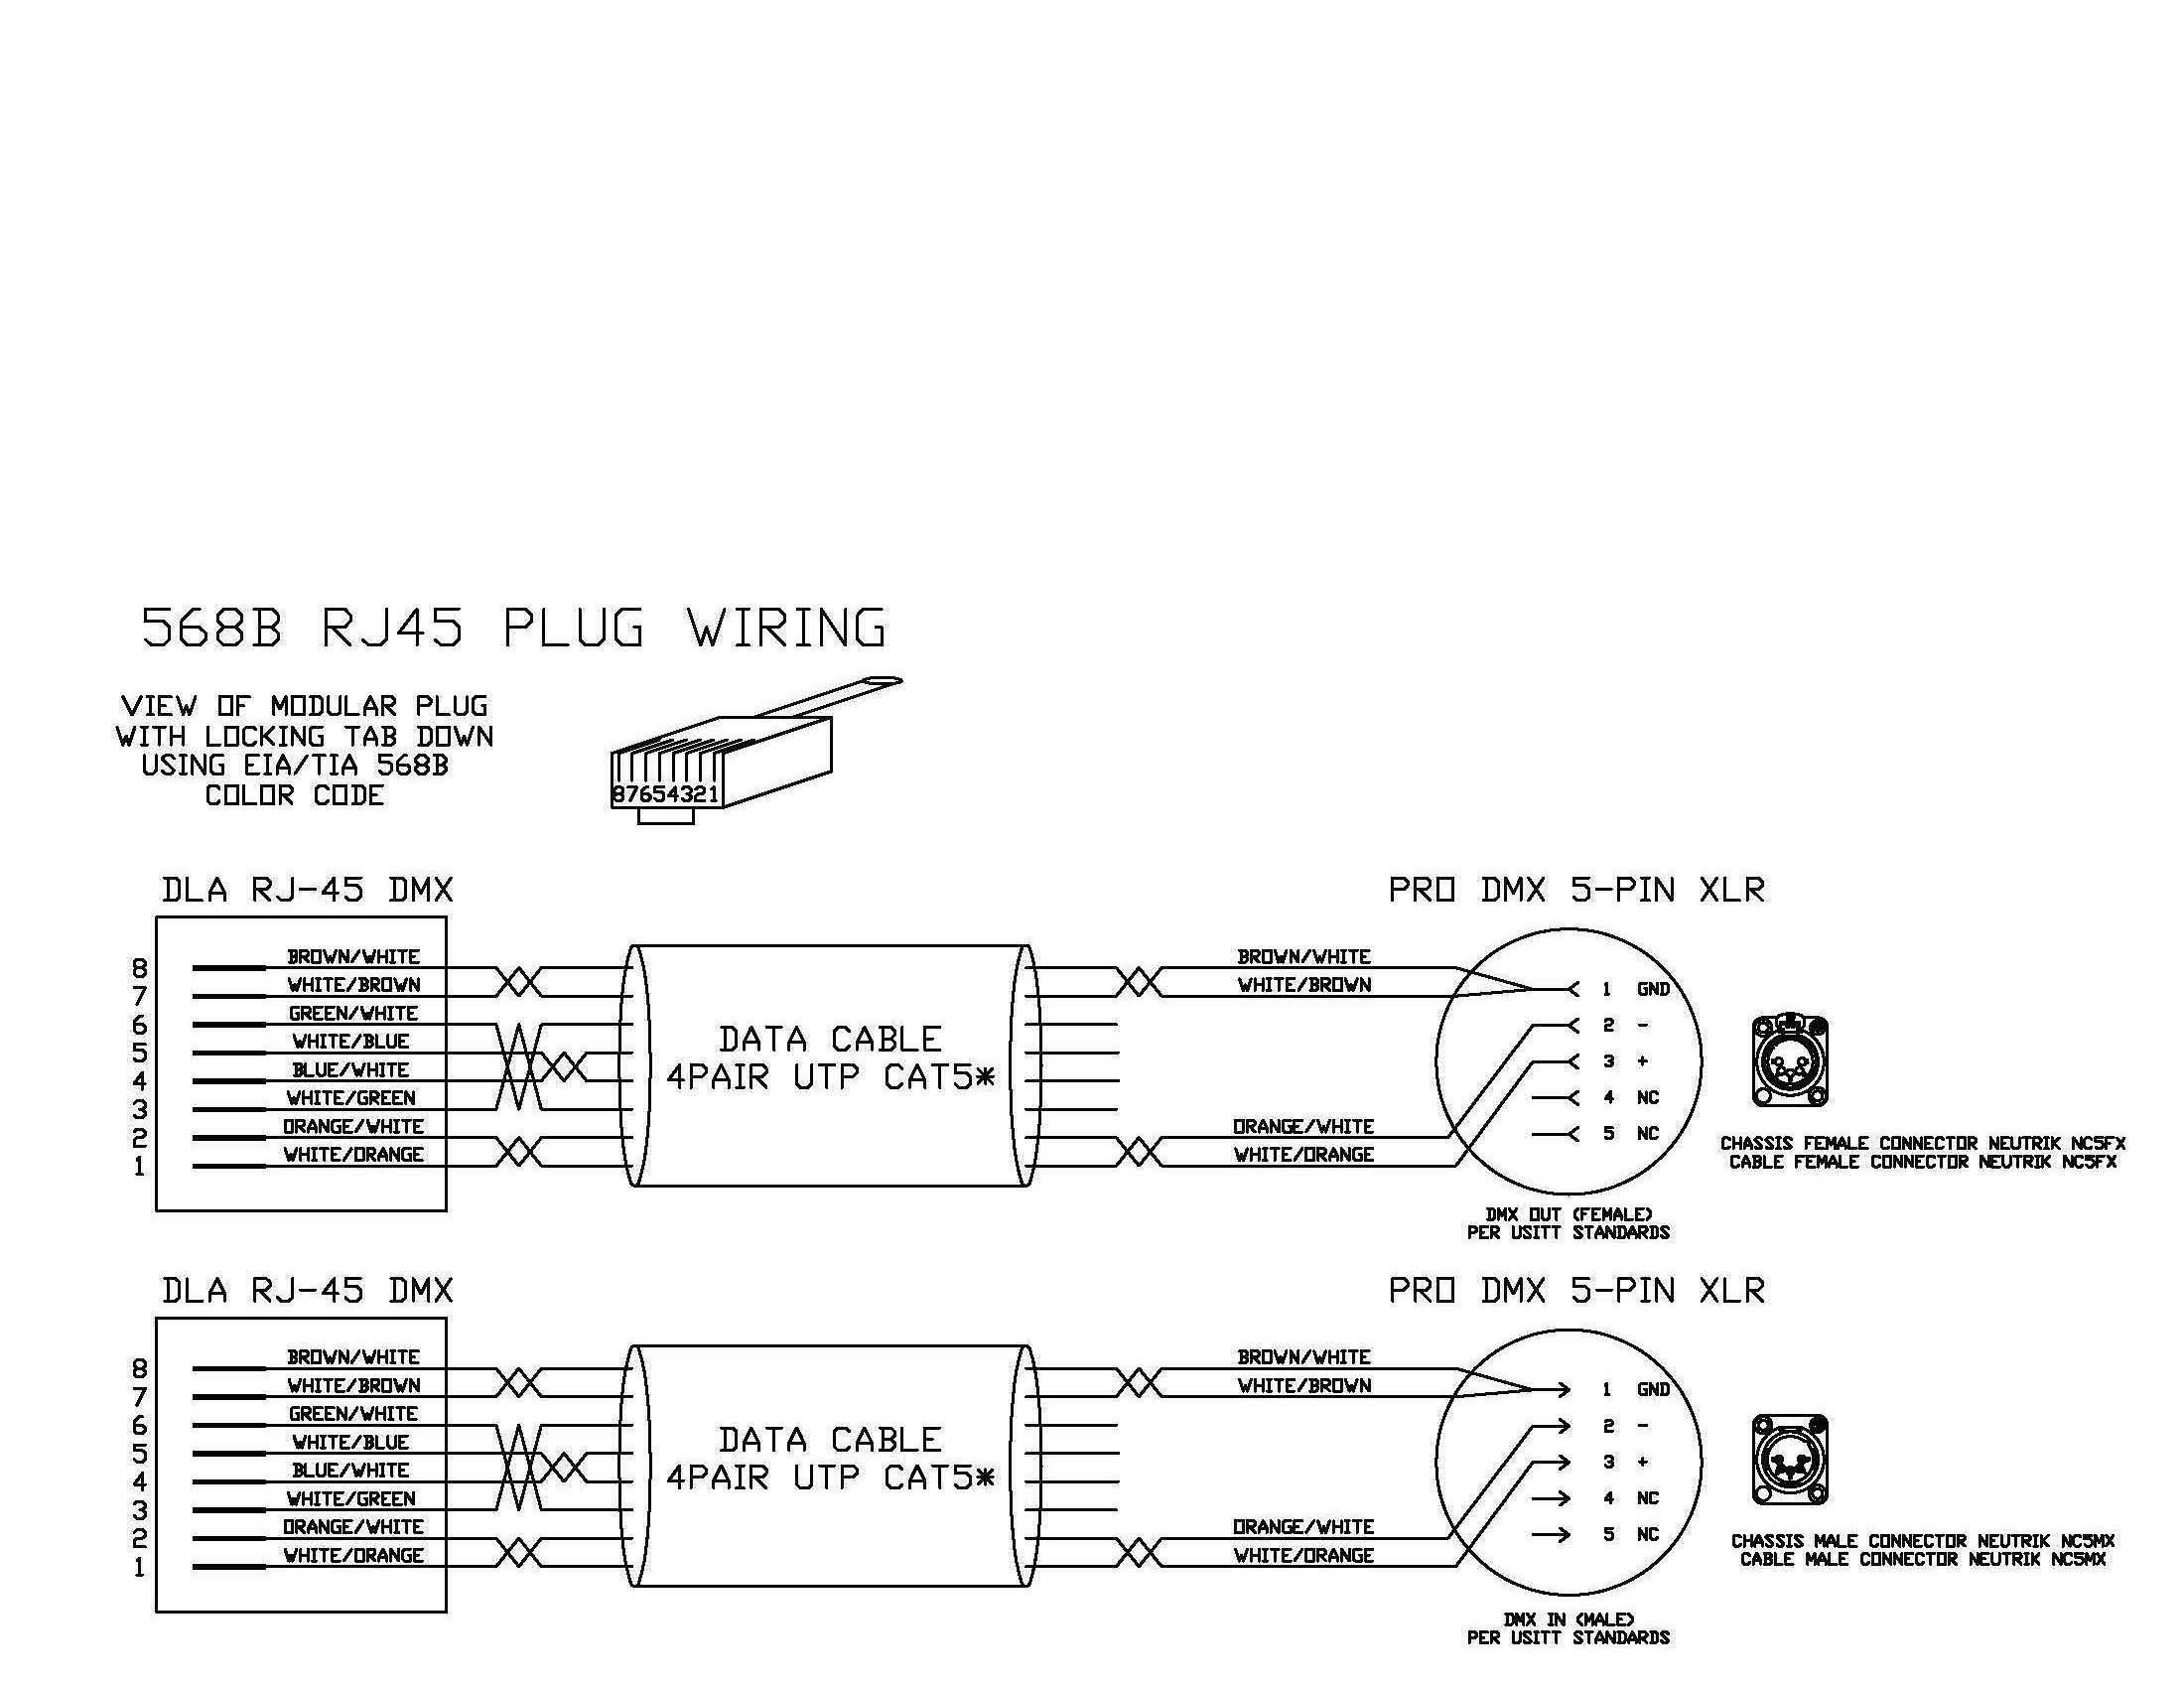 e975ddb6a839e630c21b81db05ca4fa6 xlr to rj45 wiring diagram xlr electrical wiring diagrams xlr wiring color codes at n-0.co